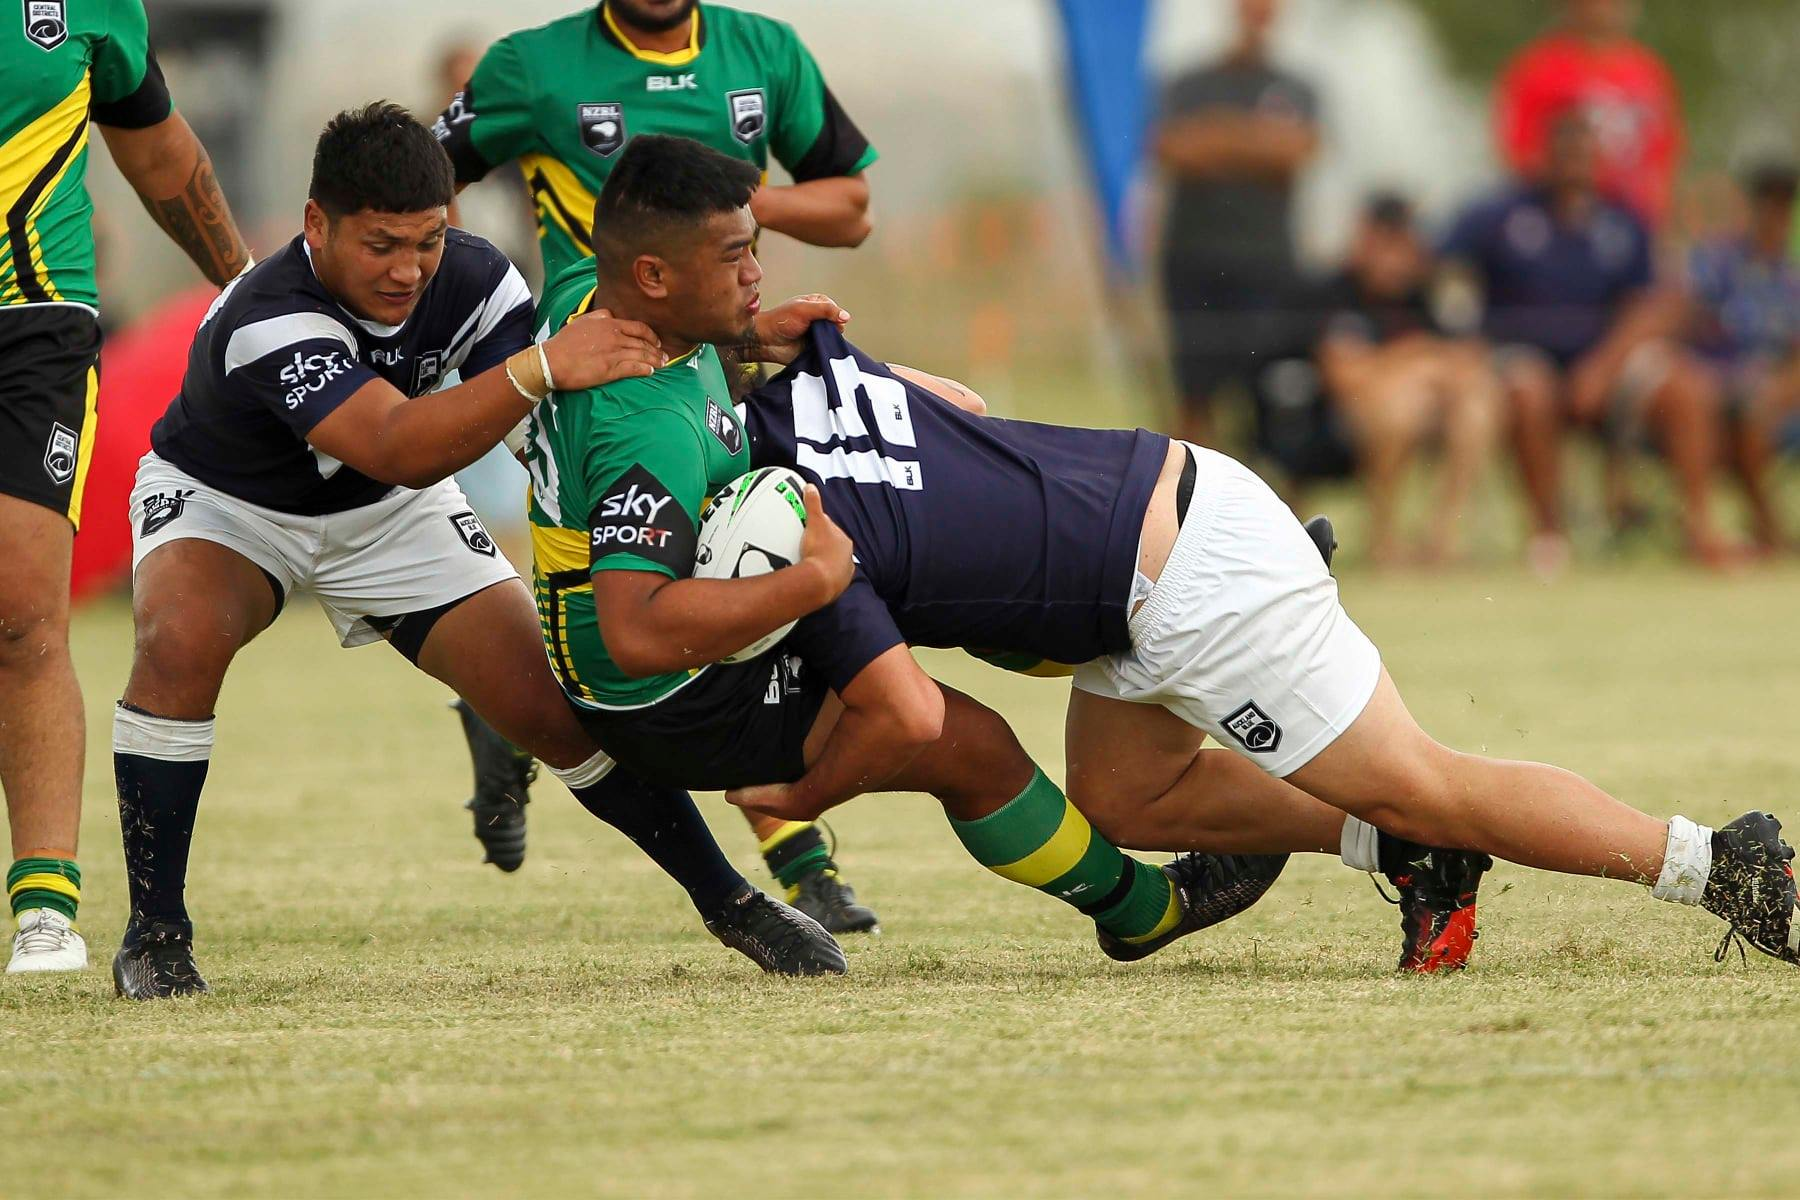 Central Districts to take on Auckland this weekend in NZ National U20s Final